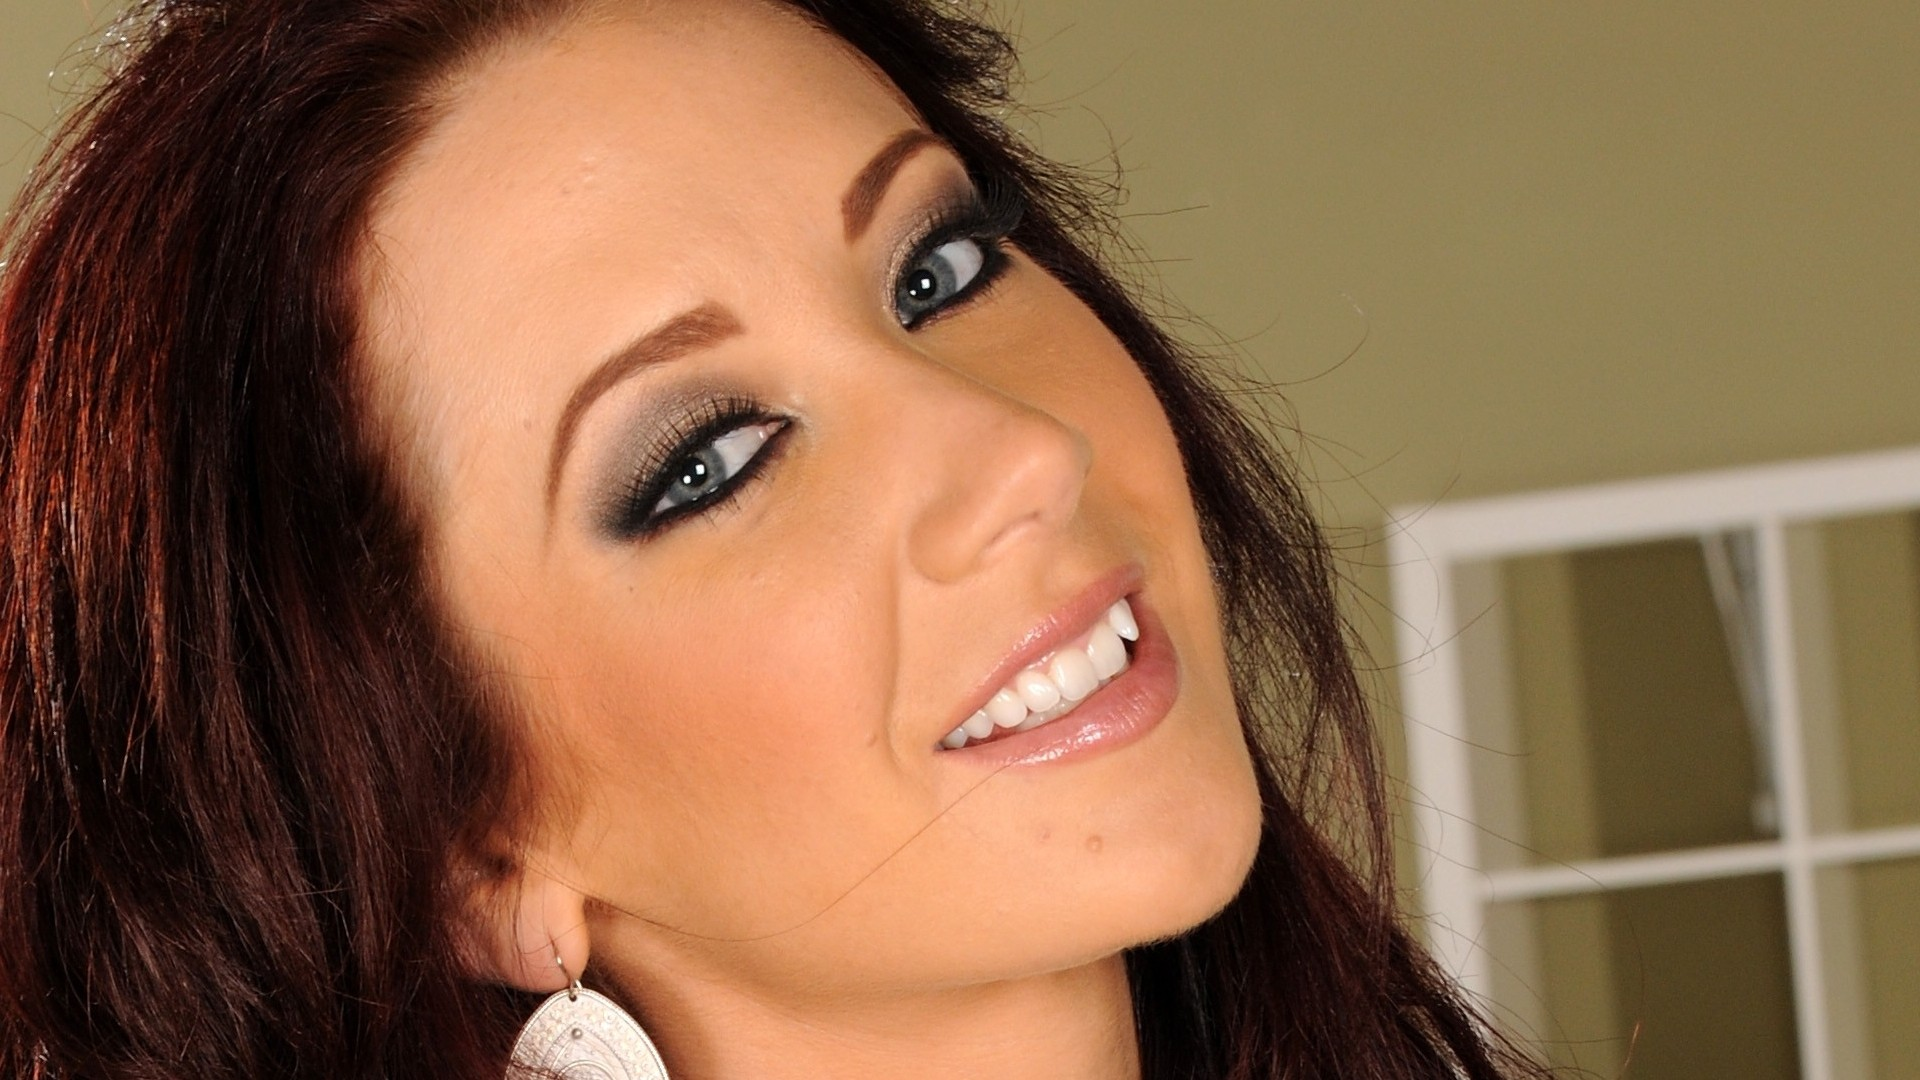 Hd Tube Jayden Jaymes Hd Wallpapers